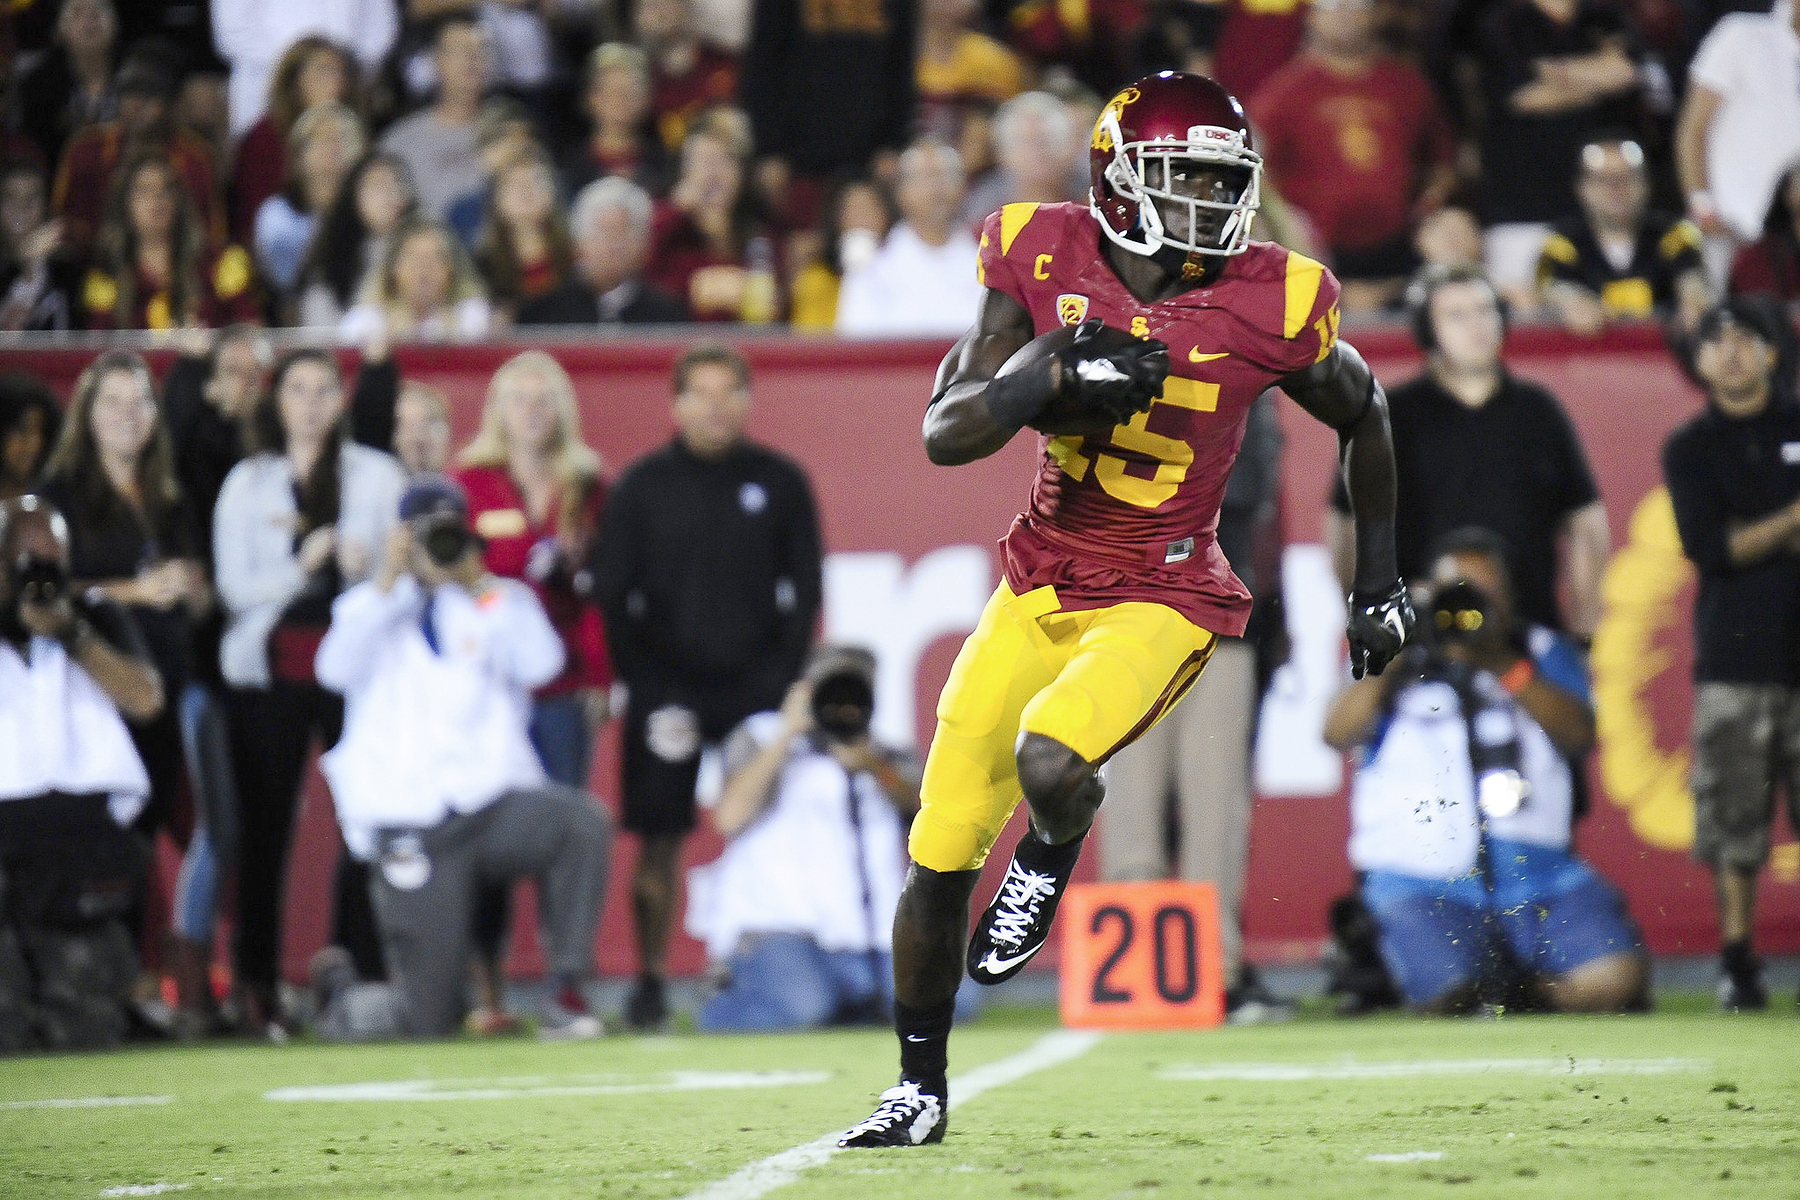 USC to take on Nebraska at Holiday Bowl in San Diego - USC News